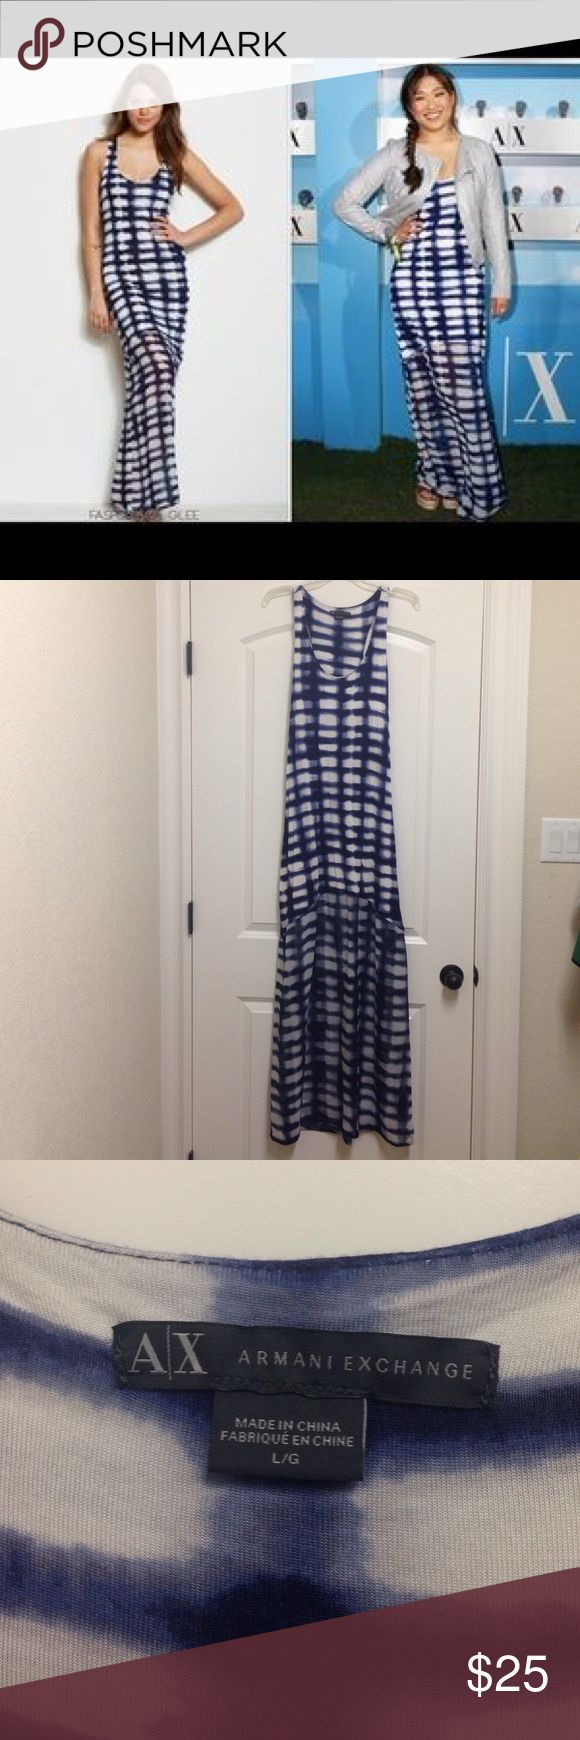 "Armani Exchange tie dye maxi dress - like new Beautiful full length maxi dress with built in shelf bra and sheer bottom (just above the knees). Super comfy resort style dress / can dress up or down / worn once / approx 61"" long from shoulder to hem A/X Armani Exchange Dresses Maxi"